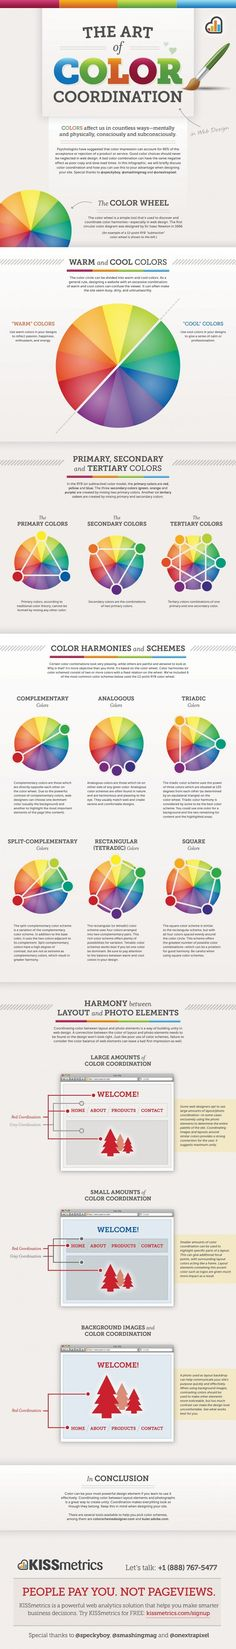 A cor aplicada ao Web Design | Raquel Melo - infografia «The Art of Color Coordination»